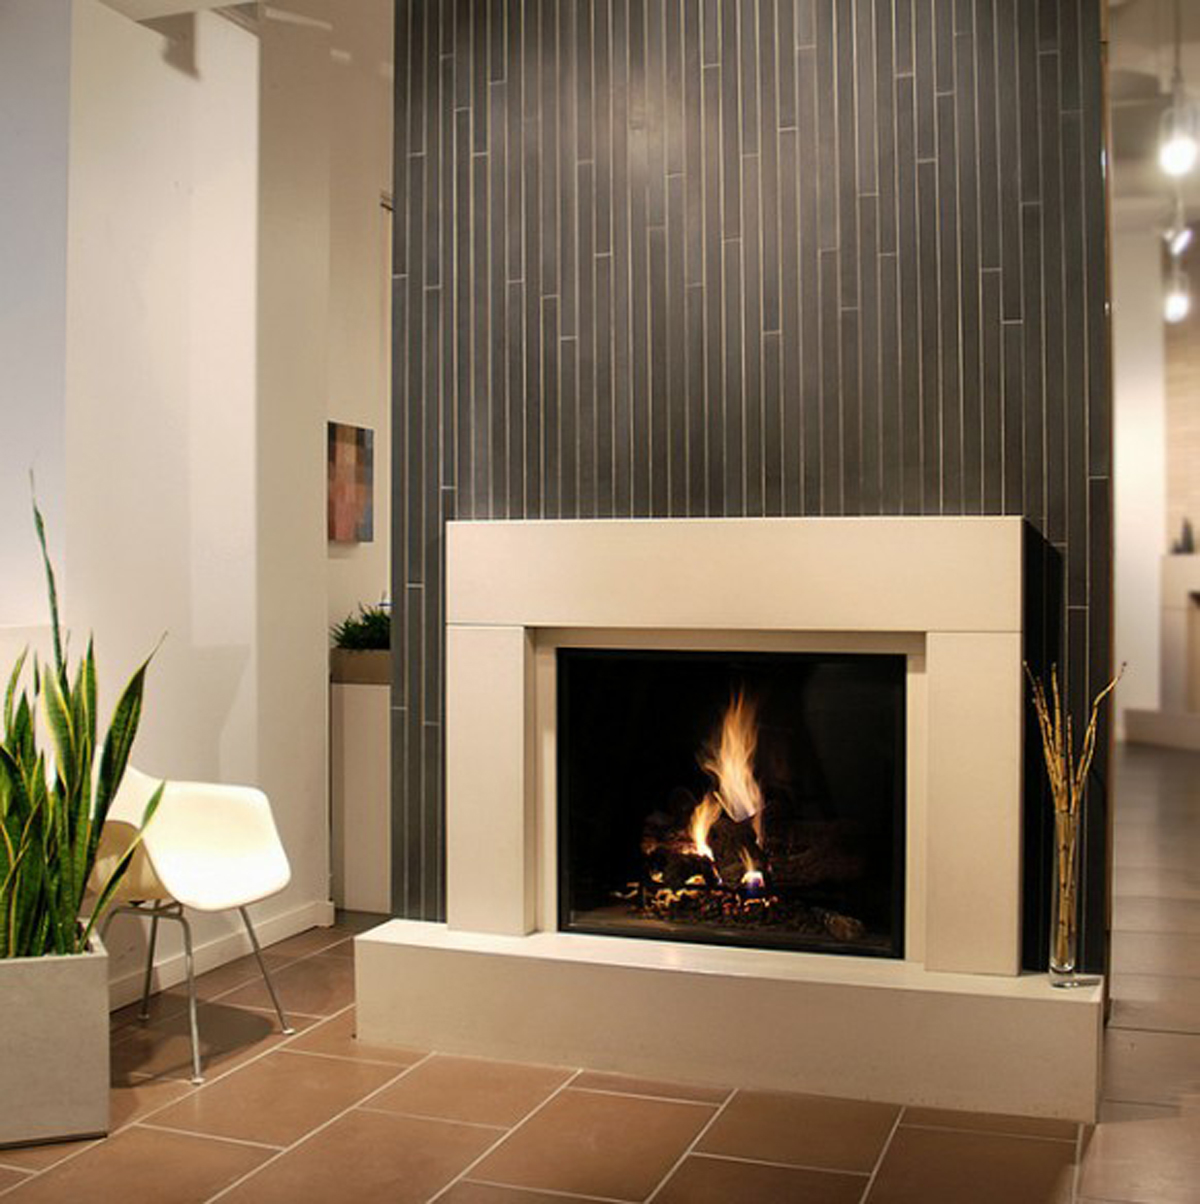 Adorable Design Of The Electric Fireplace With Grey Wall Added With Beige Mantels Ideas And White Wall Ideas